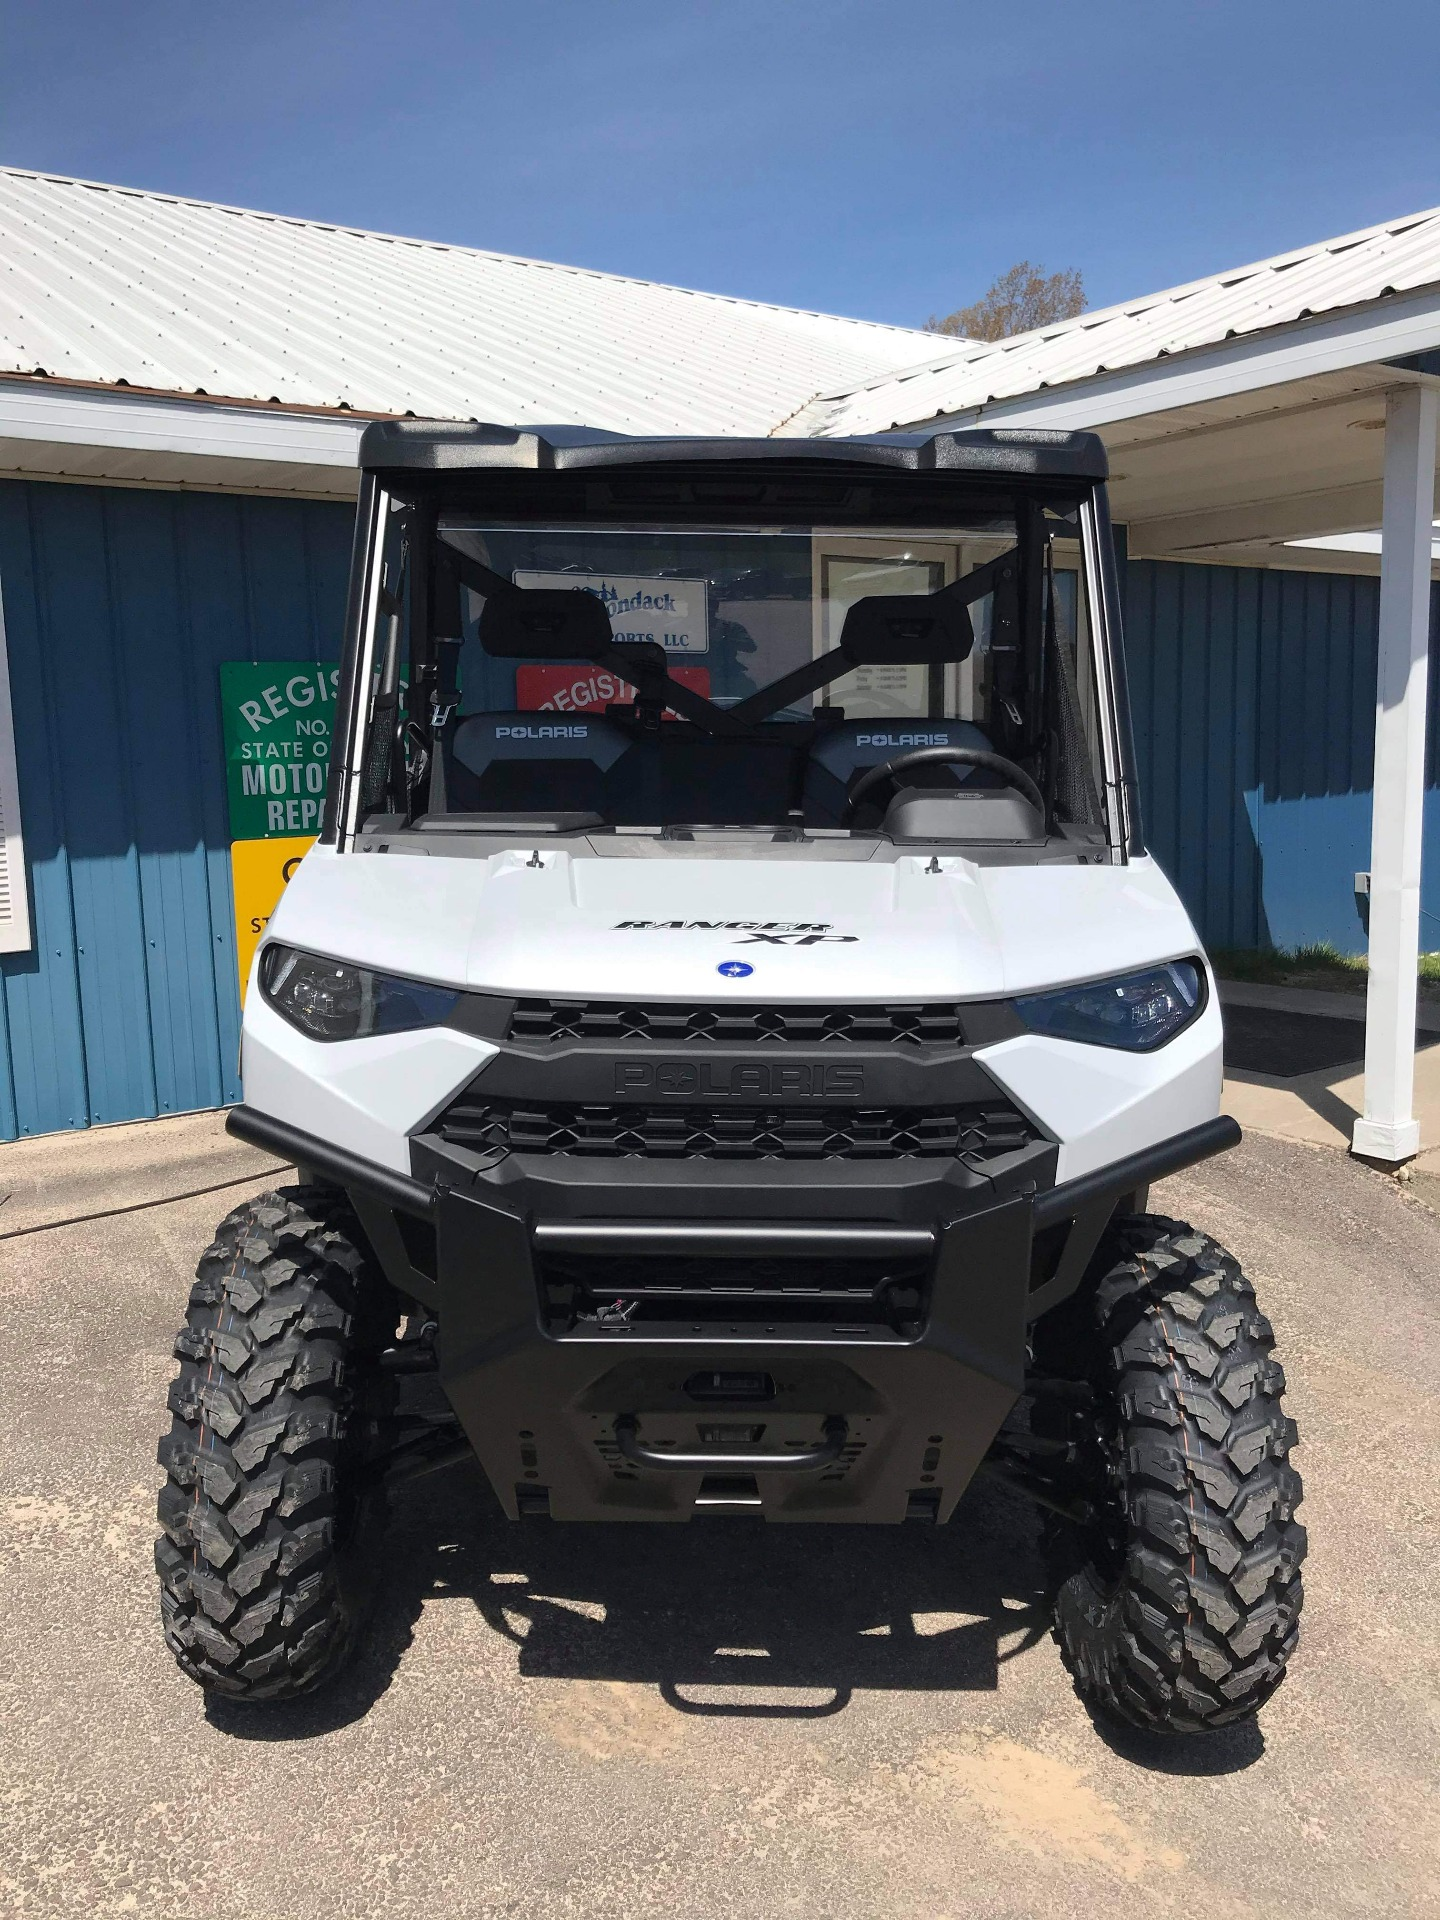 2021 Polaris Ranger XP 1000 Trail Boss in Malone, New York - Photo 1